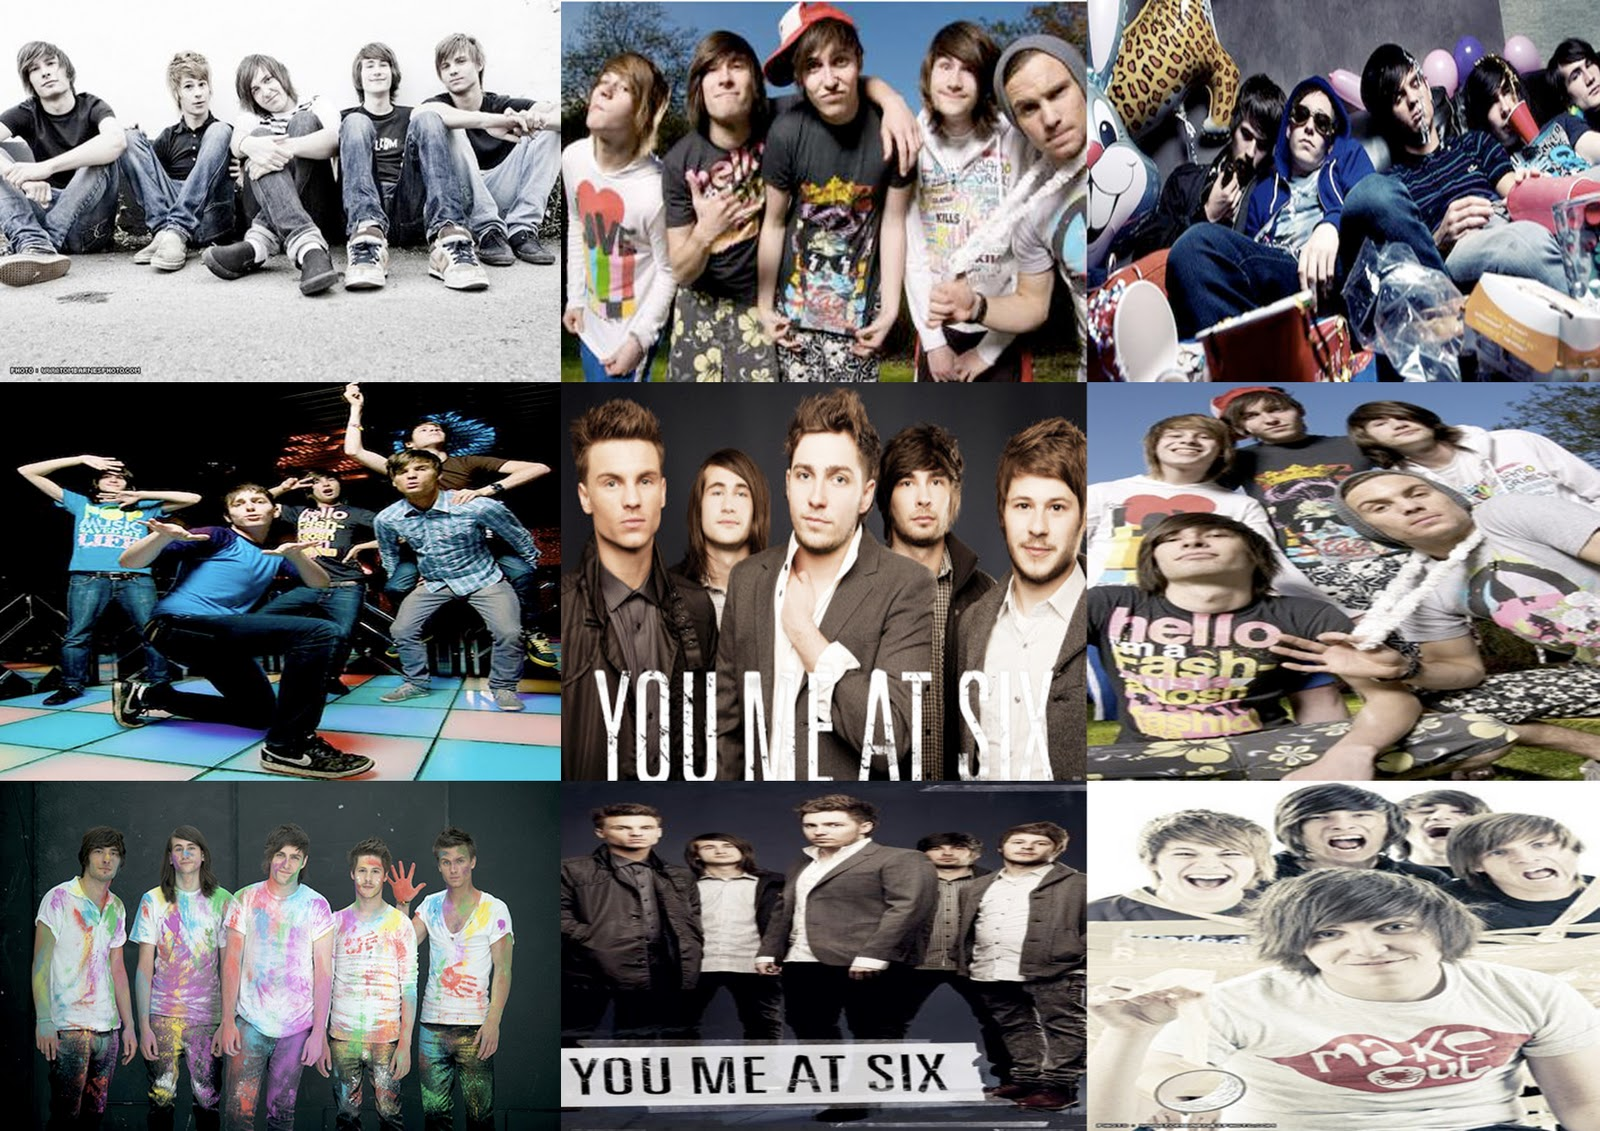 You Me At Six - Gallery Photo Colection